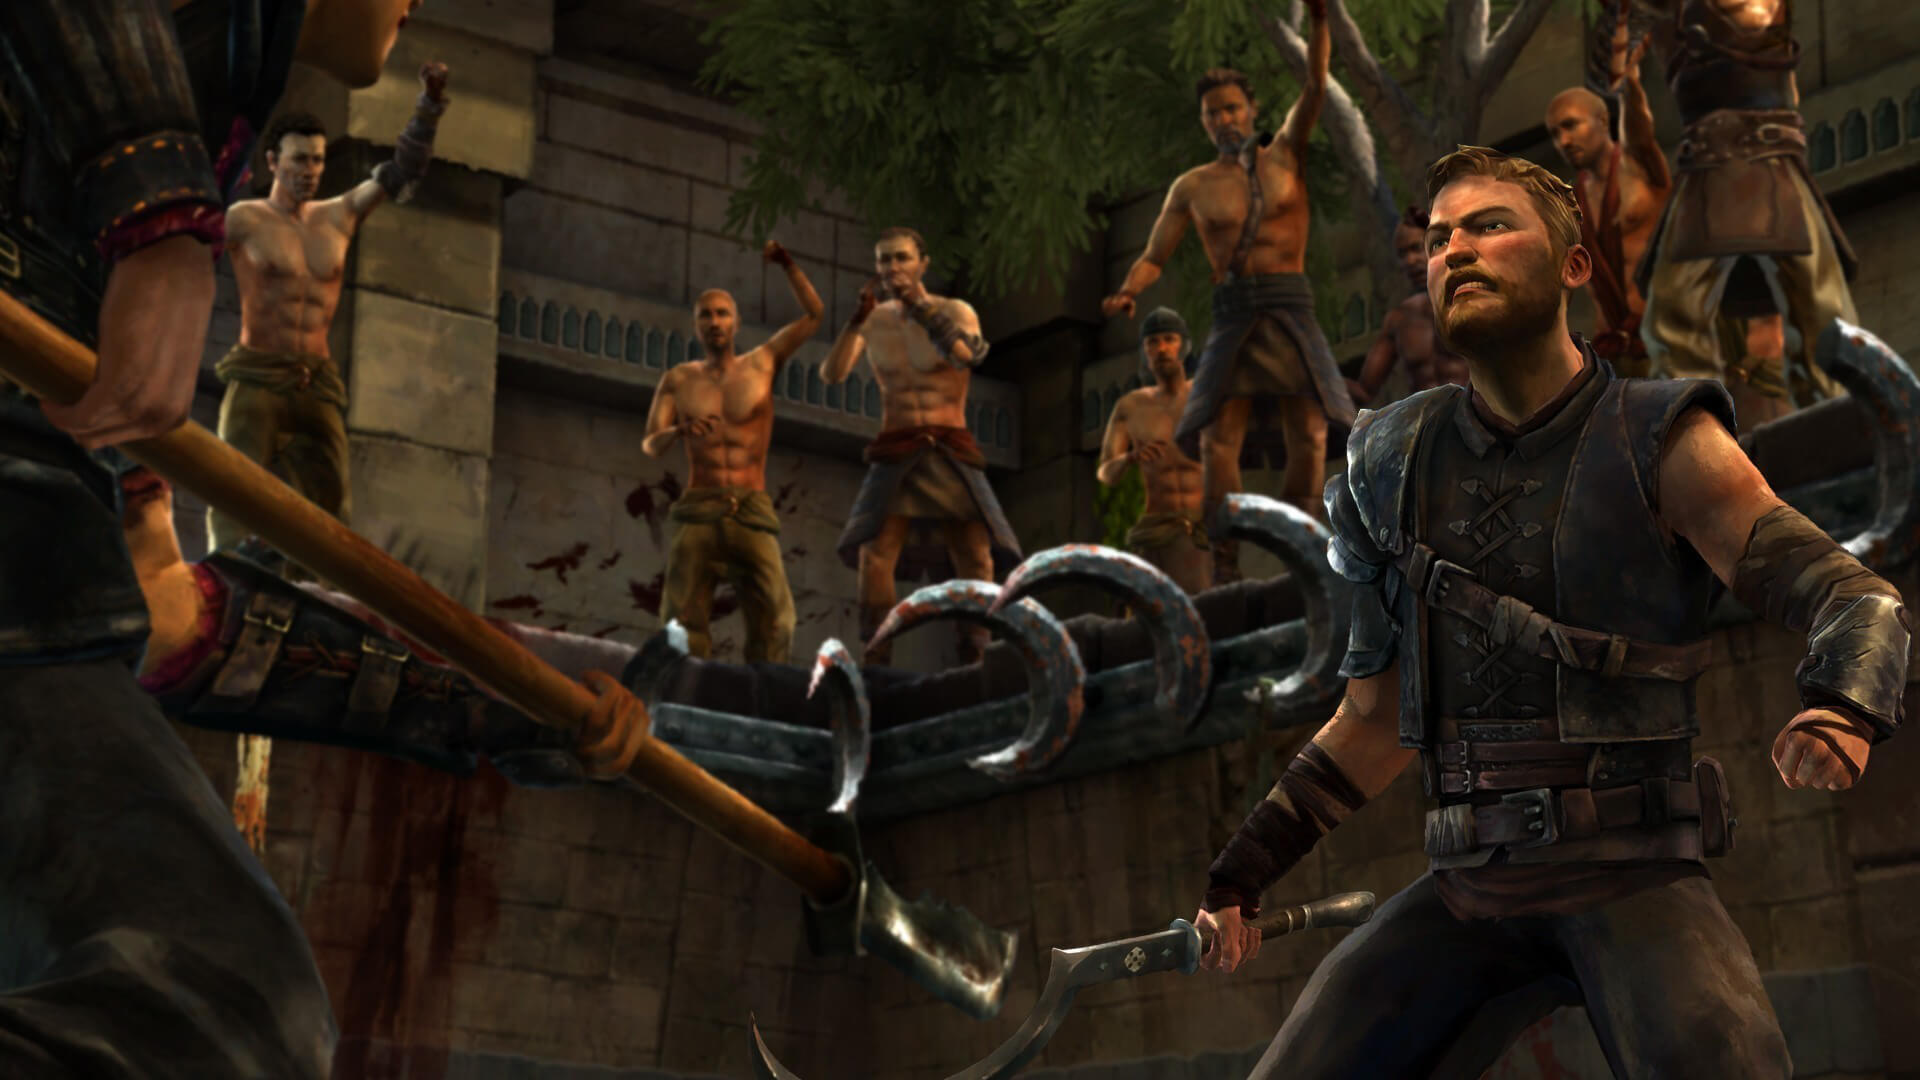 Game-of-Thrones-Telltale-Pit-Fight-1